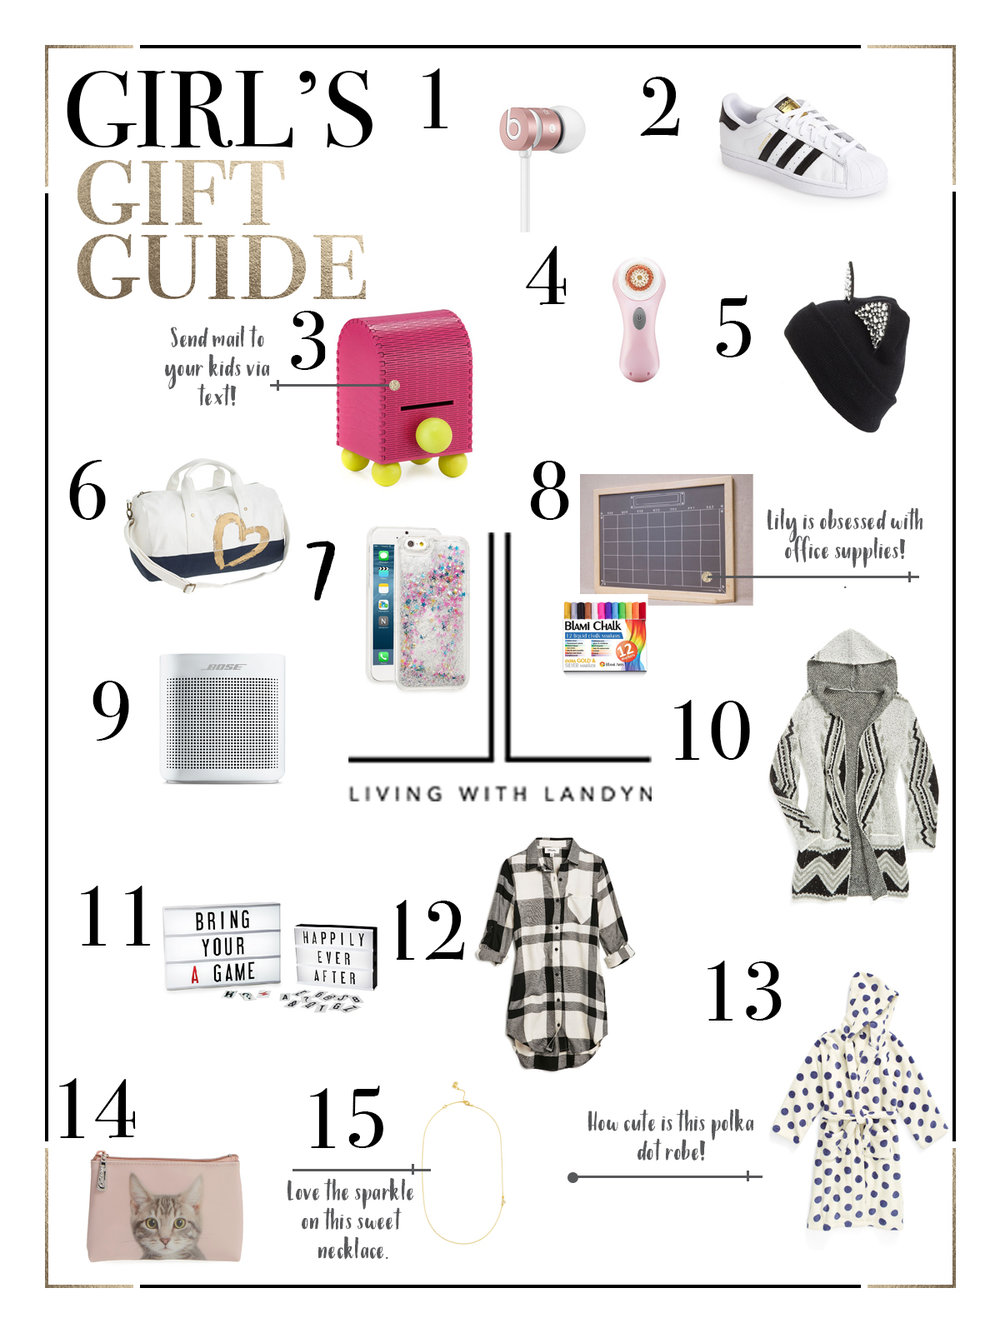 Christmas gift guide for a tween girl what to get a tween girl for christmas